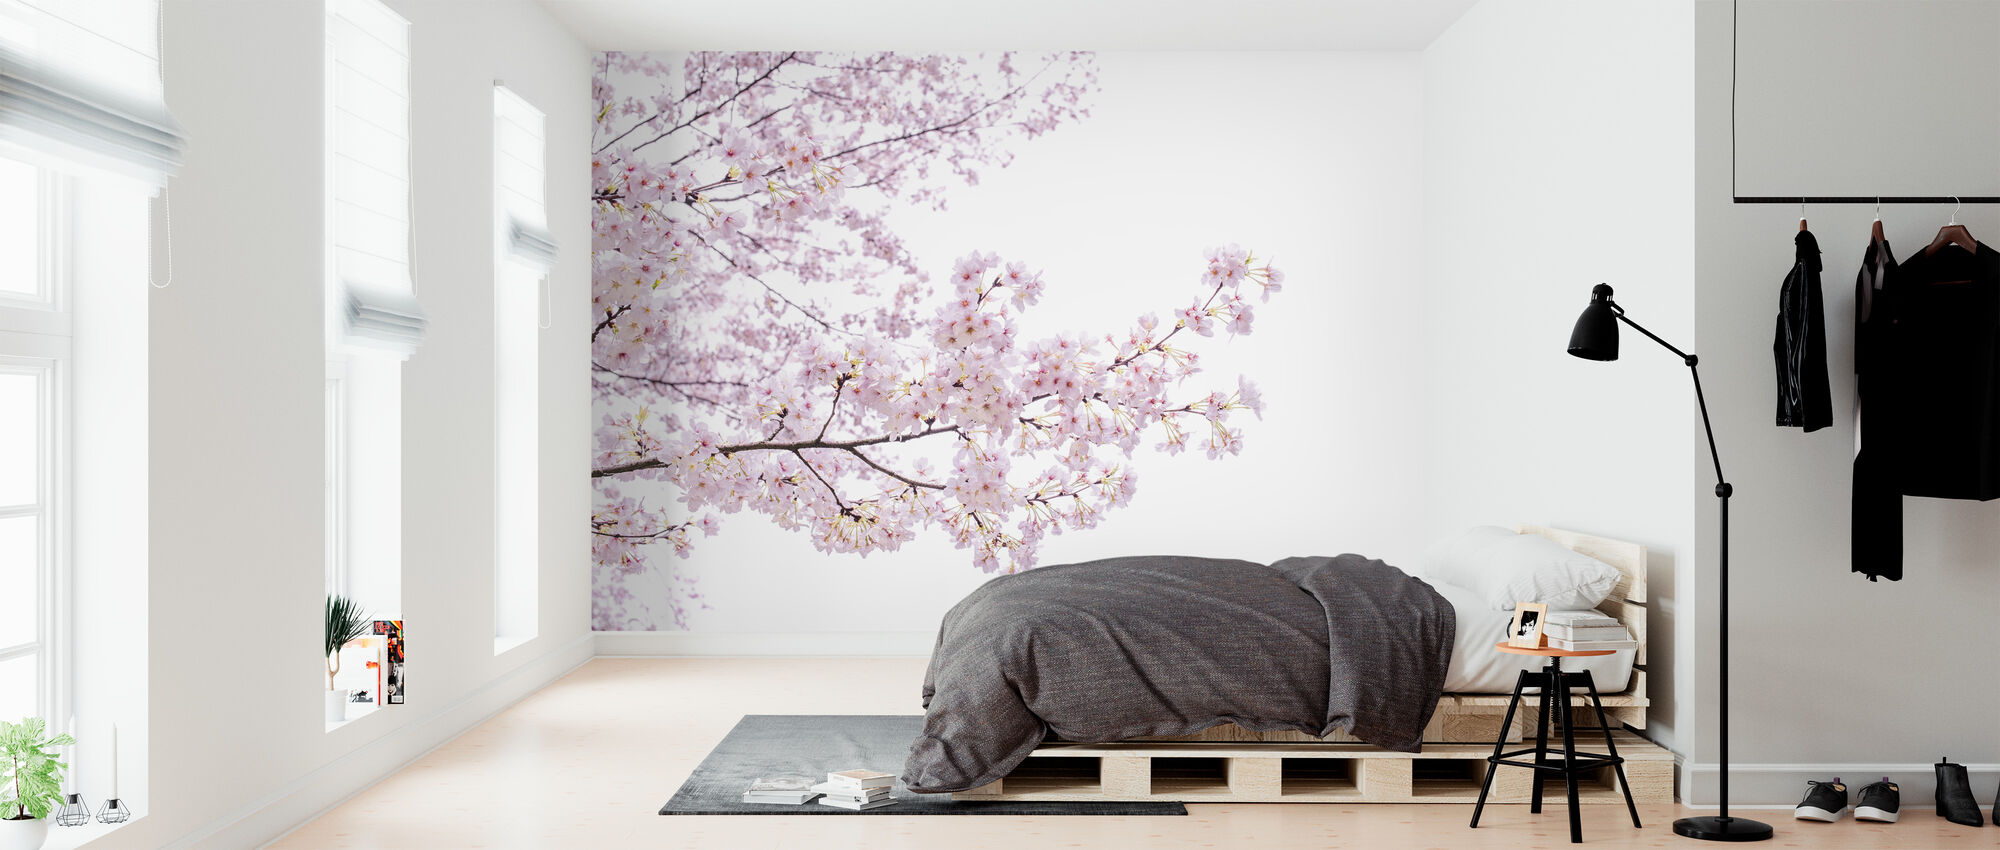 Divine Cherry Blossoms - Wallpaper - Bedroom